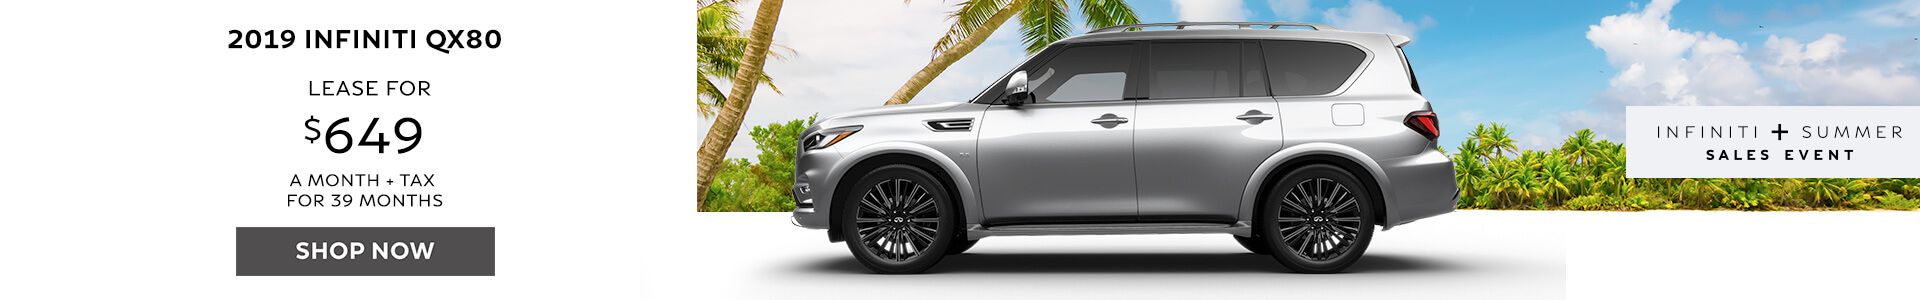 QX80 - Lease for $649